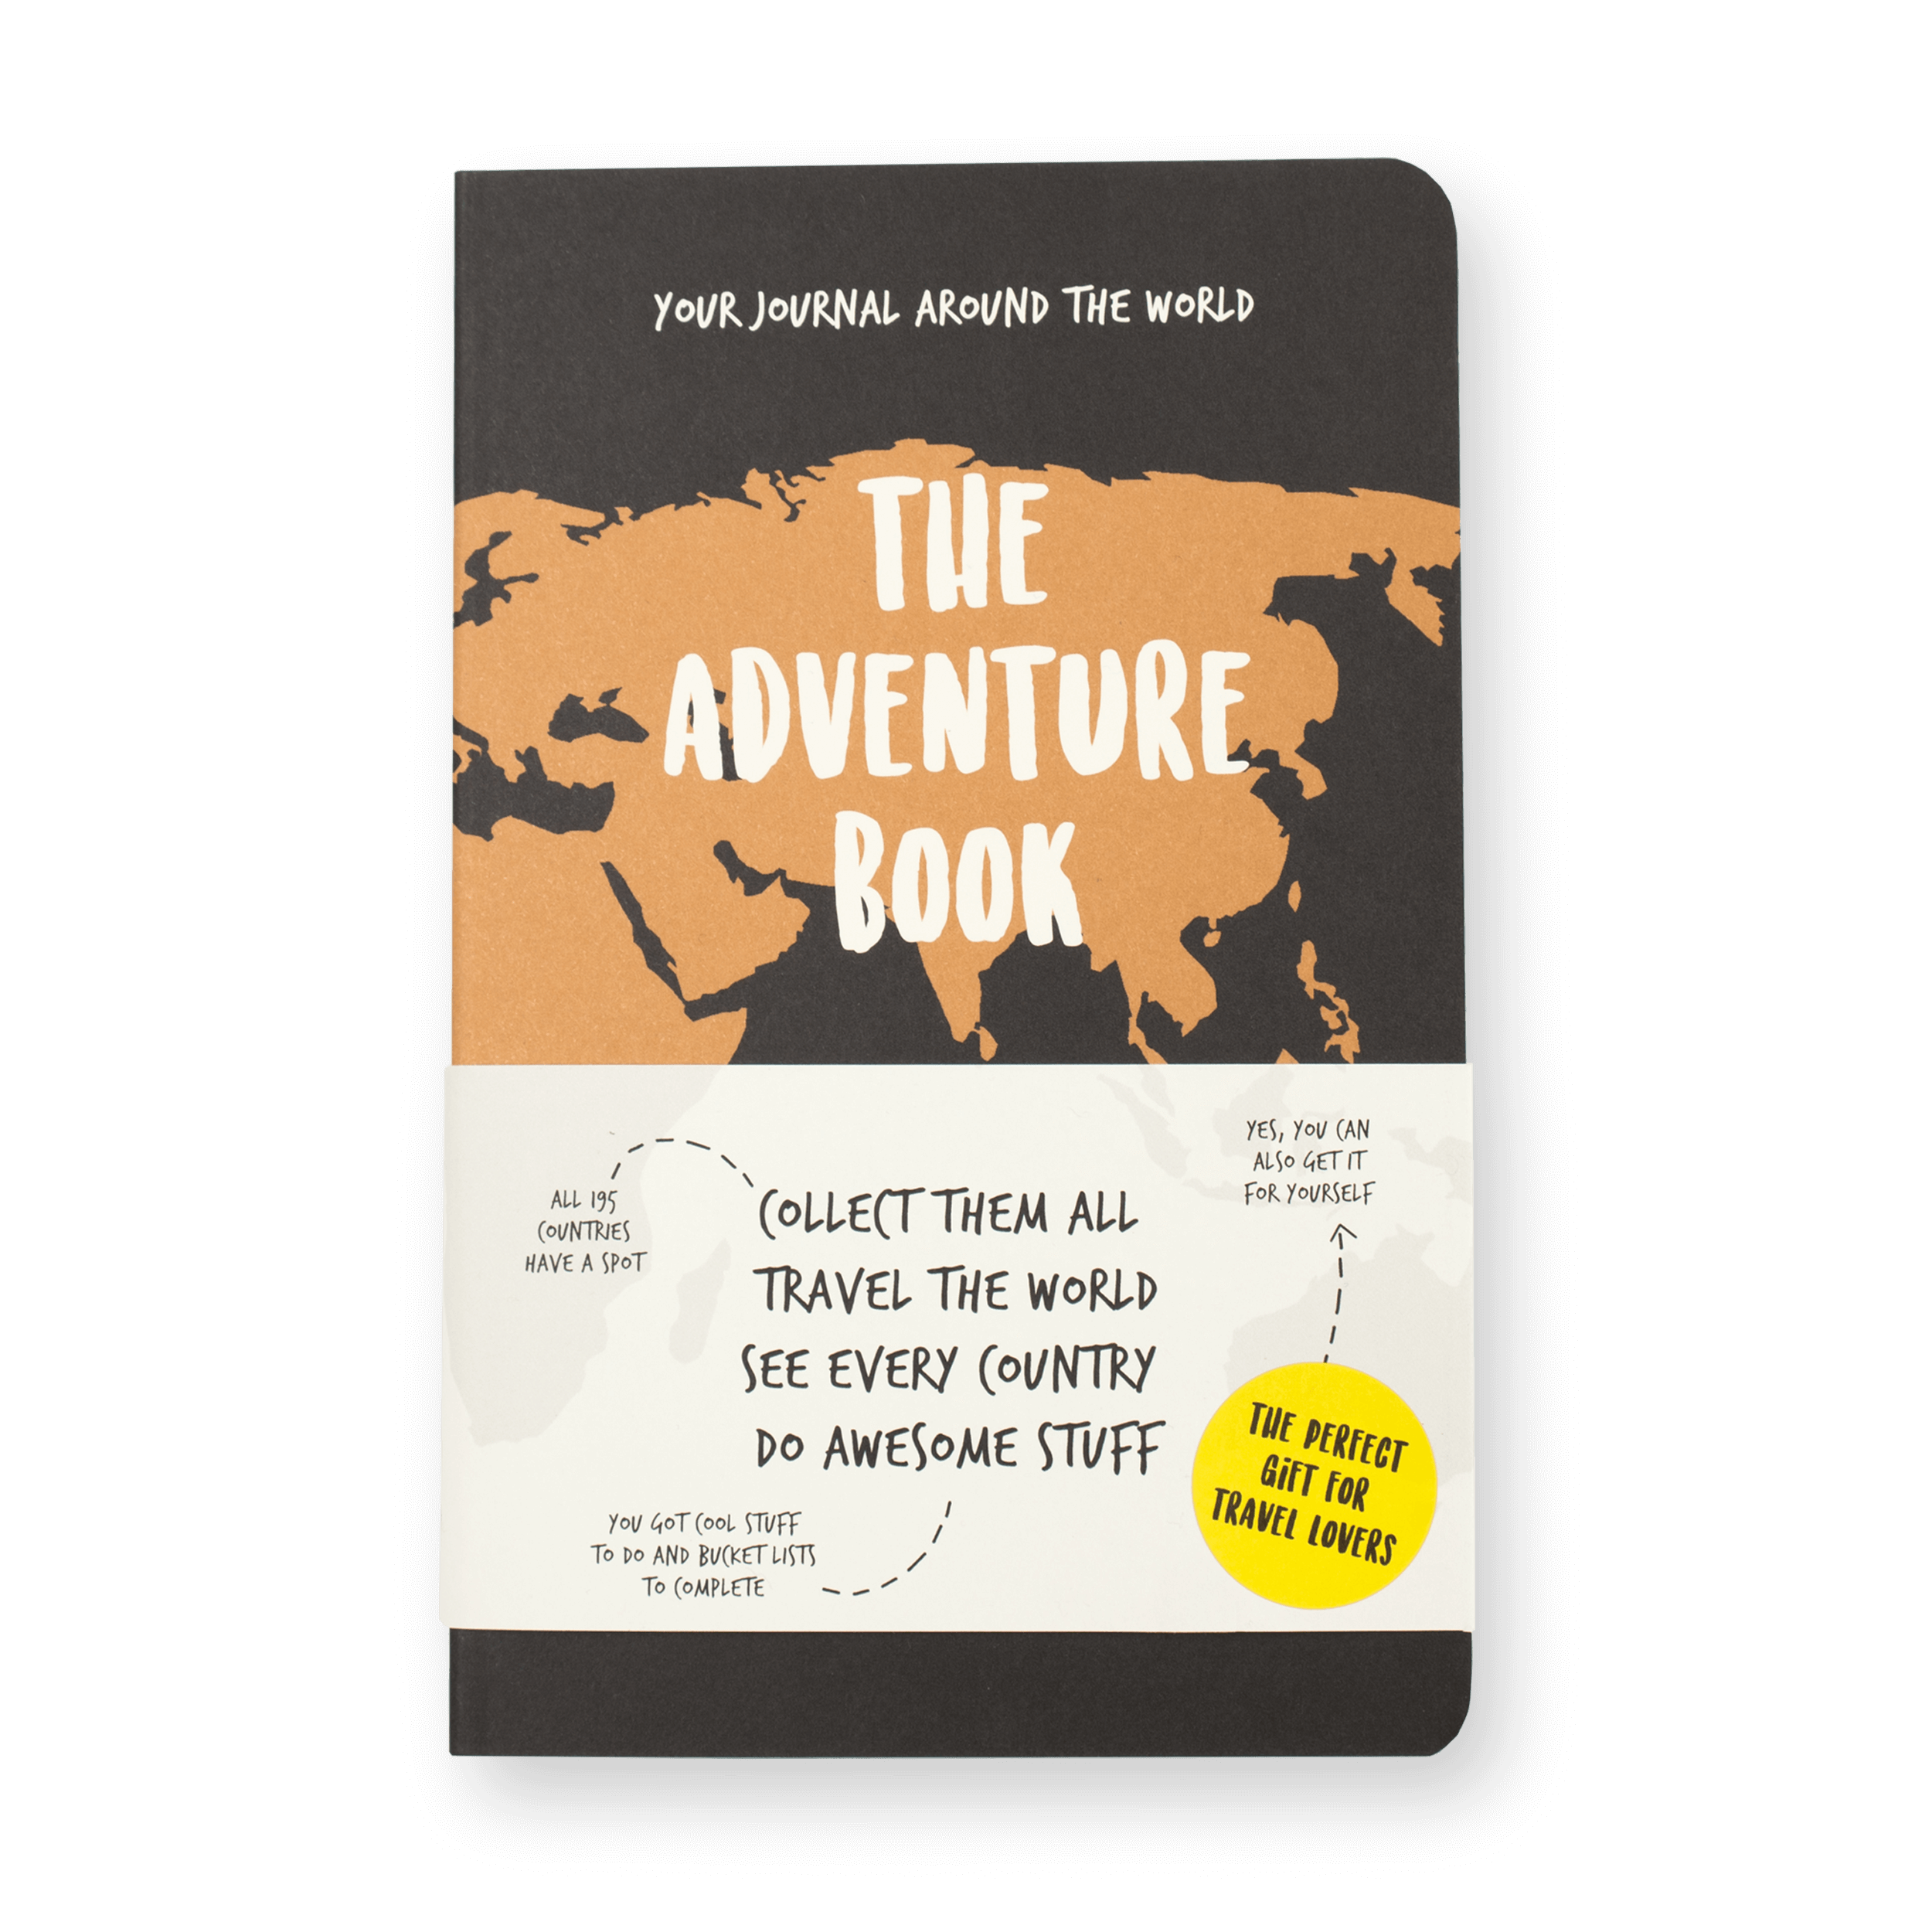 The Adventure Book front Travel Journal